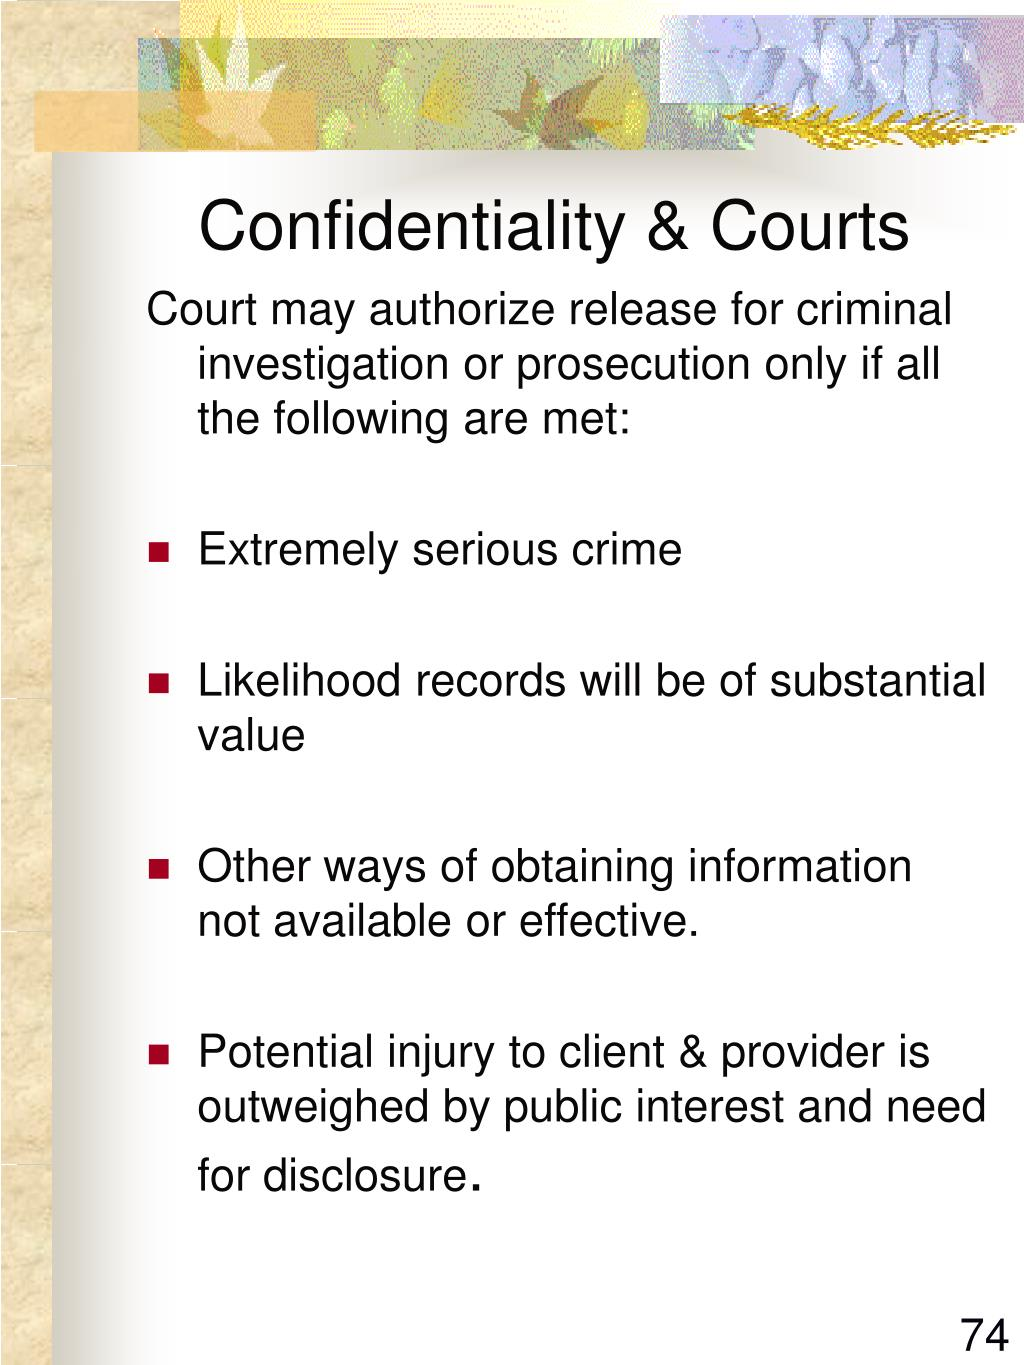 Confidentiality & Courts